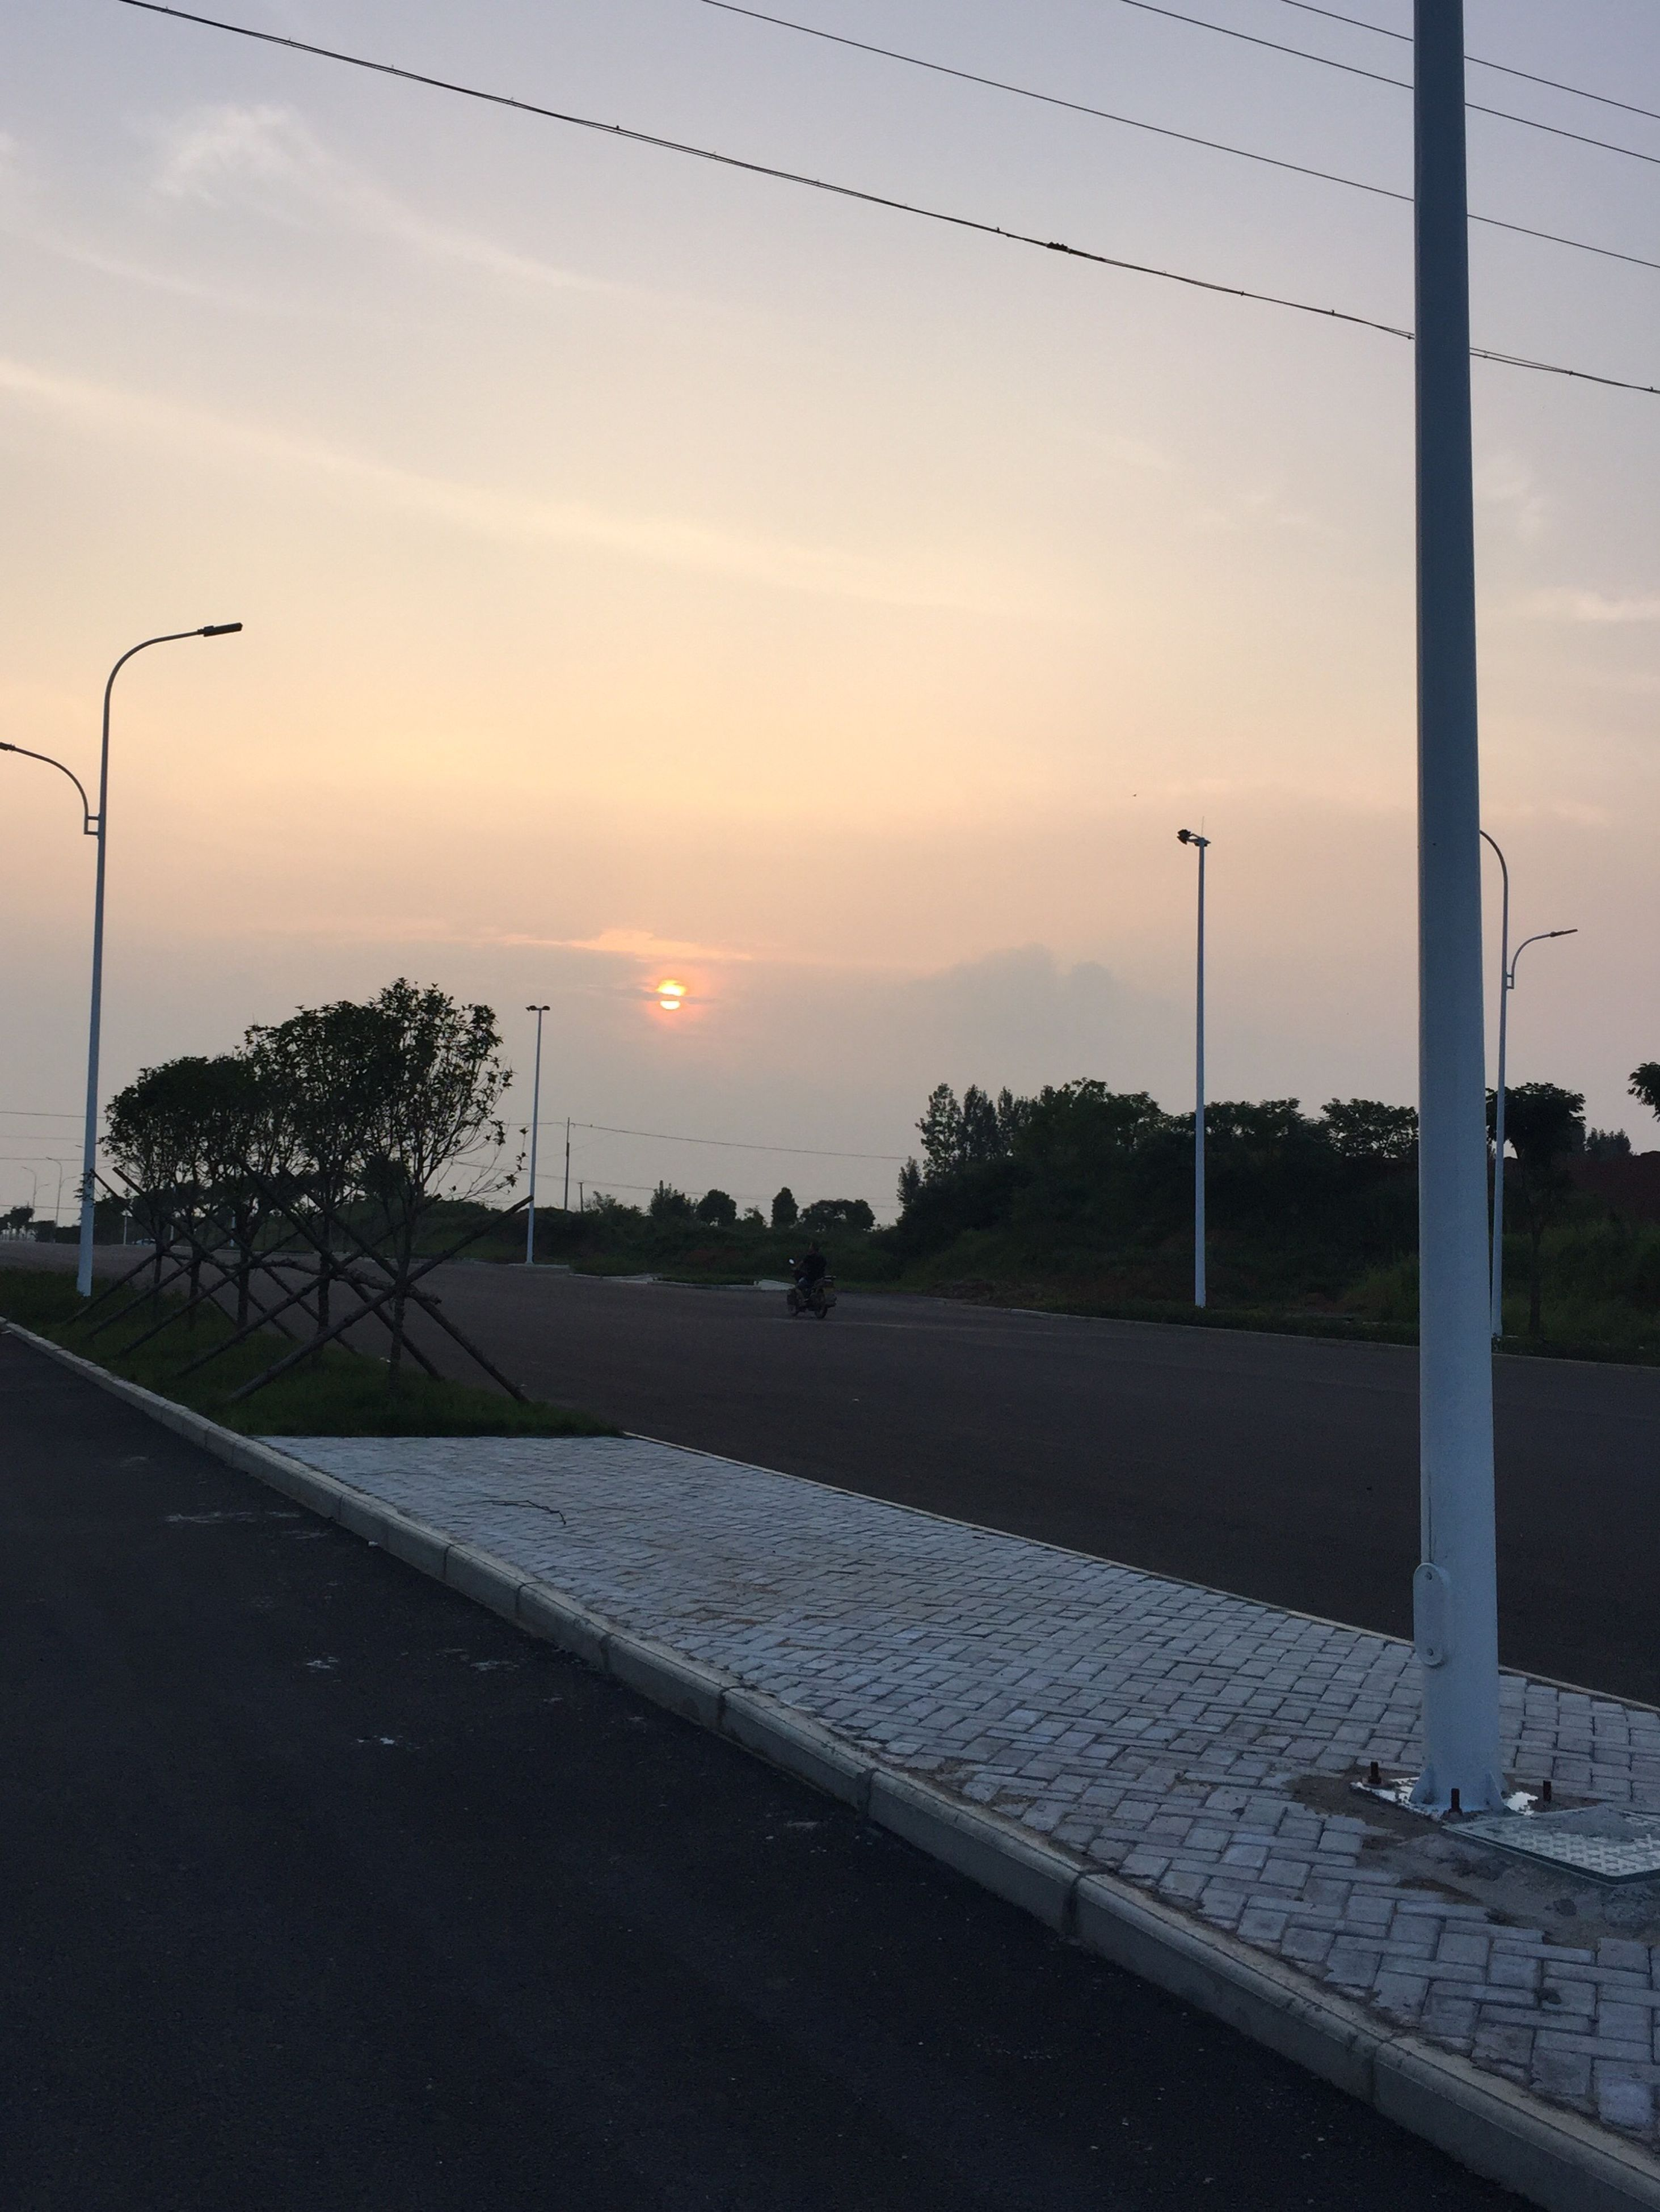 street light, sunset, tree, sky, road, the way forward, lighting equipment, cloud - sky, empty, tranquility, pole, outdoors, nature, tranquil scene, no people, cloud, scenics, orange color, beauty in nature, diminishing perspective, sun, landscape, idyllic